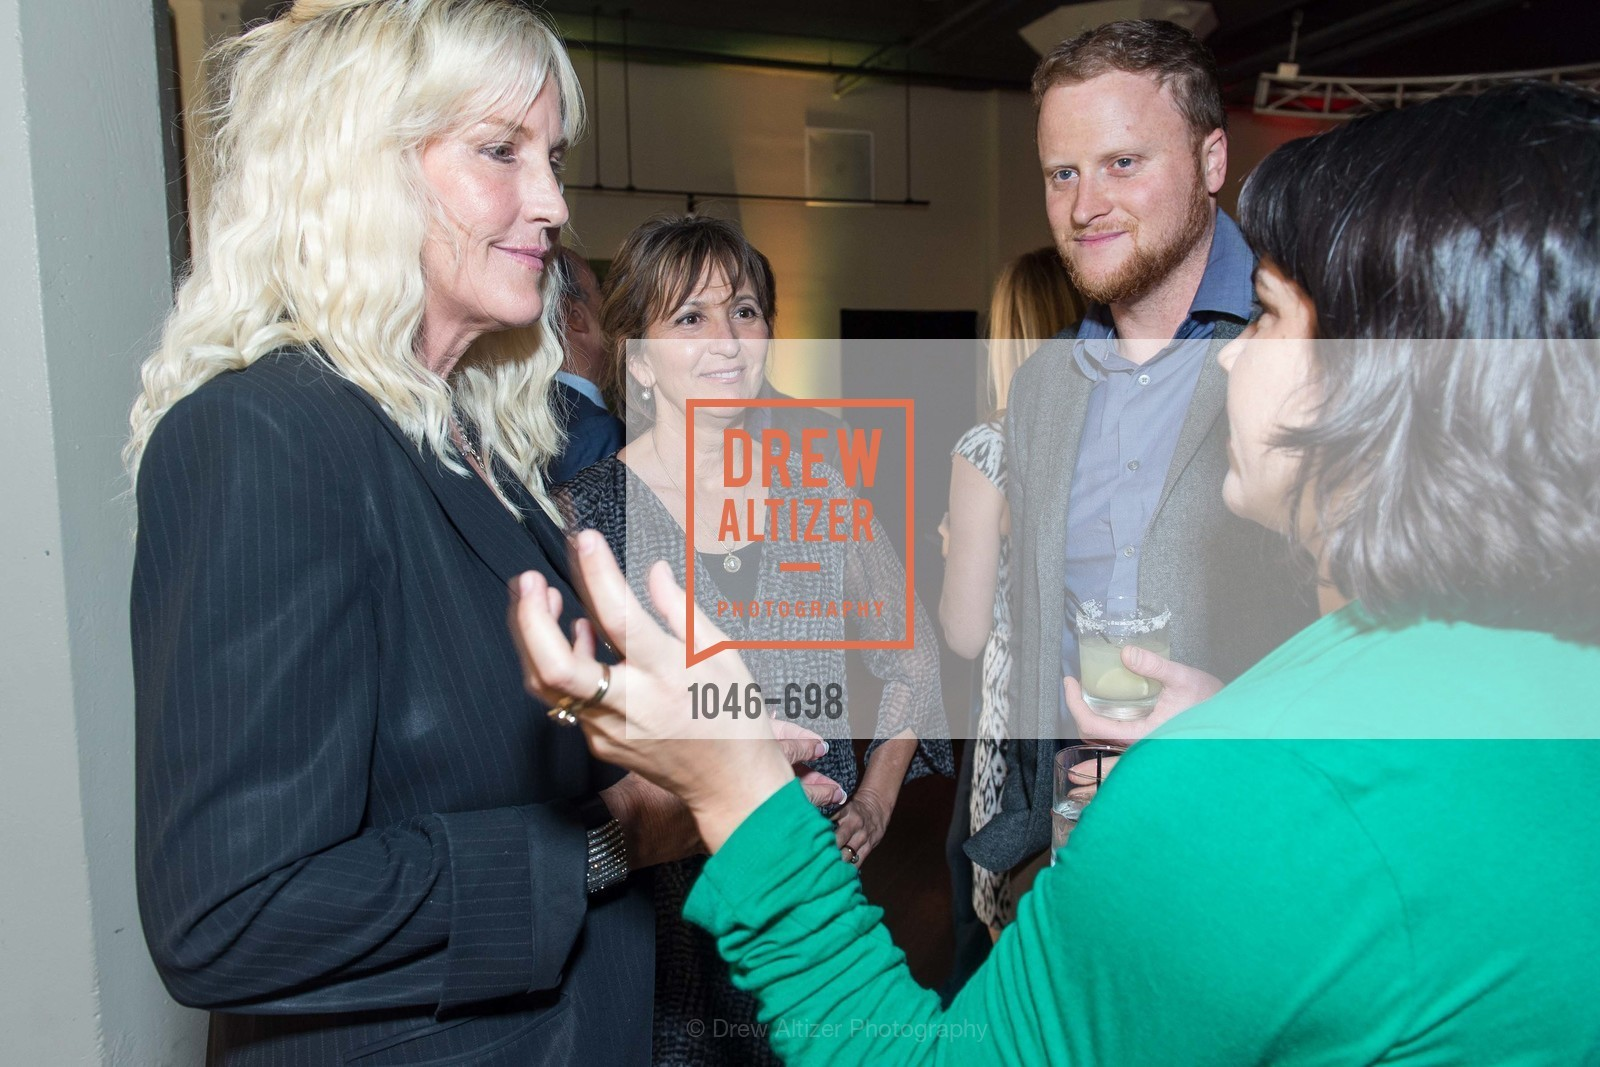 Erin Brockovich, Karen Benkhe, Daniel Brindis, EWG's 6th Annual Earth Dinner, US, May 6th, 2015,Drew Altizer, Drew Altizer Photography, full-service agency, private events, San Francisco photographer, photographer california